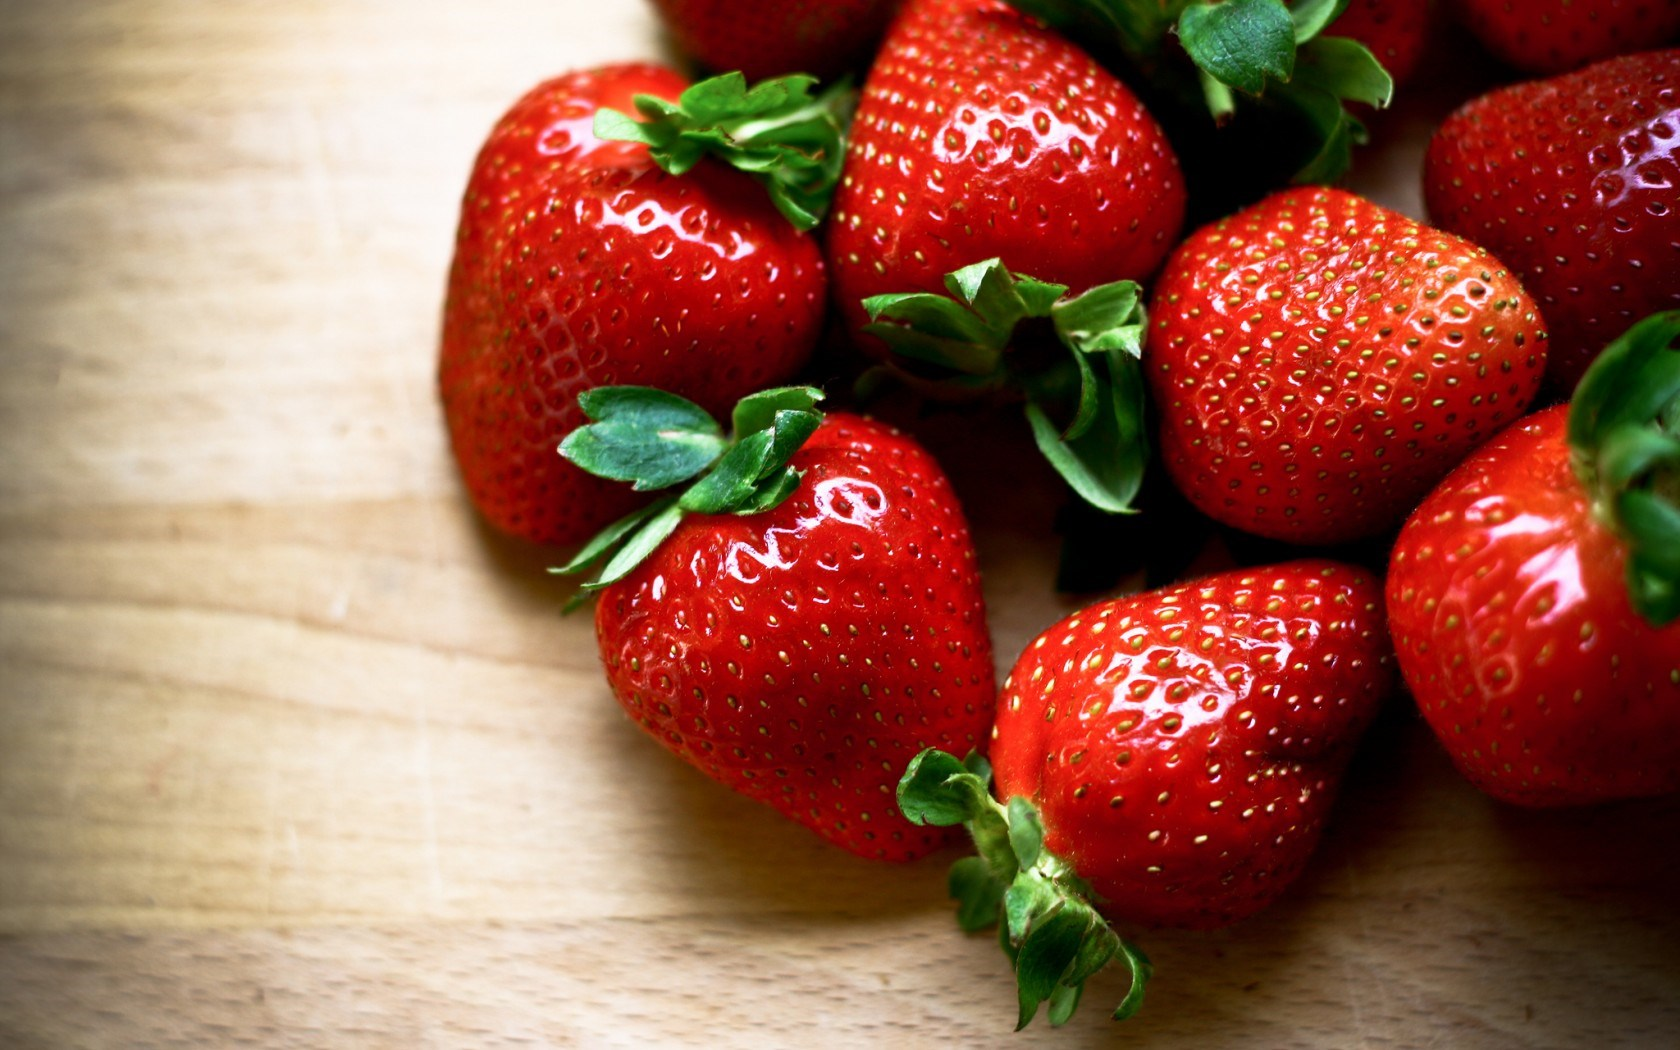 strawberries-red-ripe-berries-hd-wallpaper